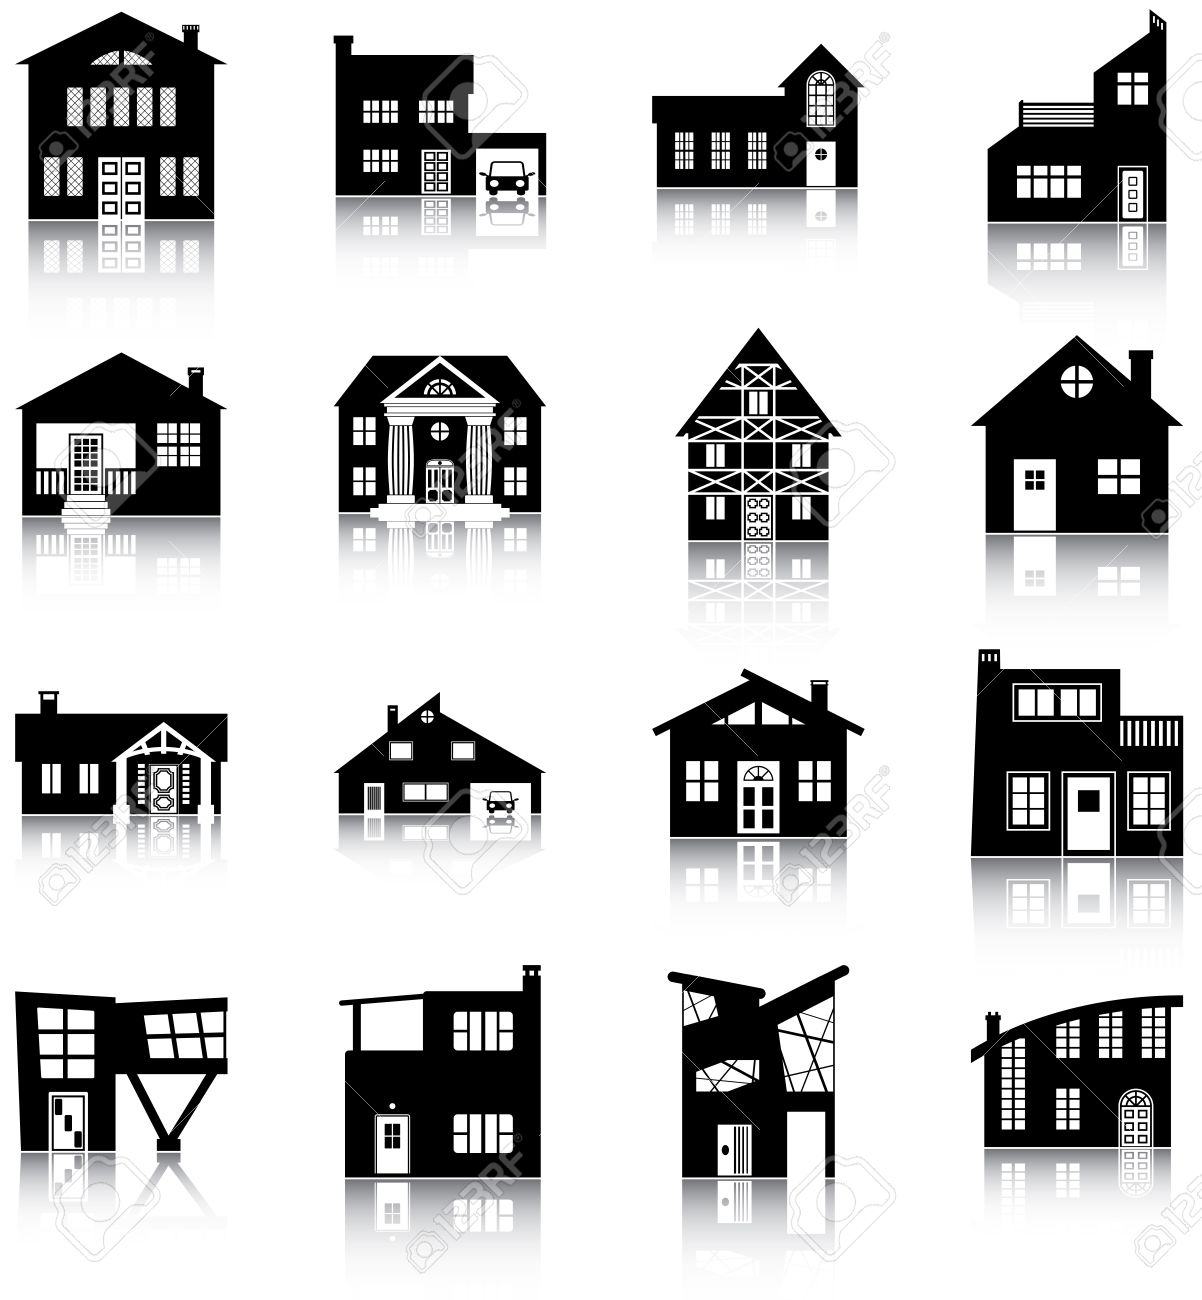 16 Silhouettes Of Different Types Of Houses Royalty Free Cliparts.